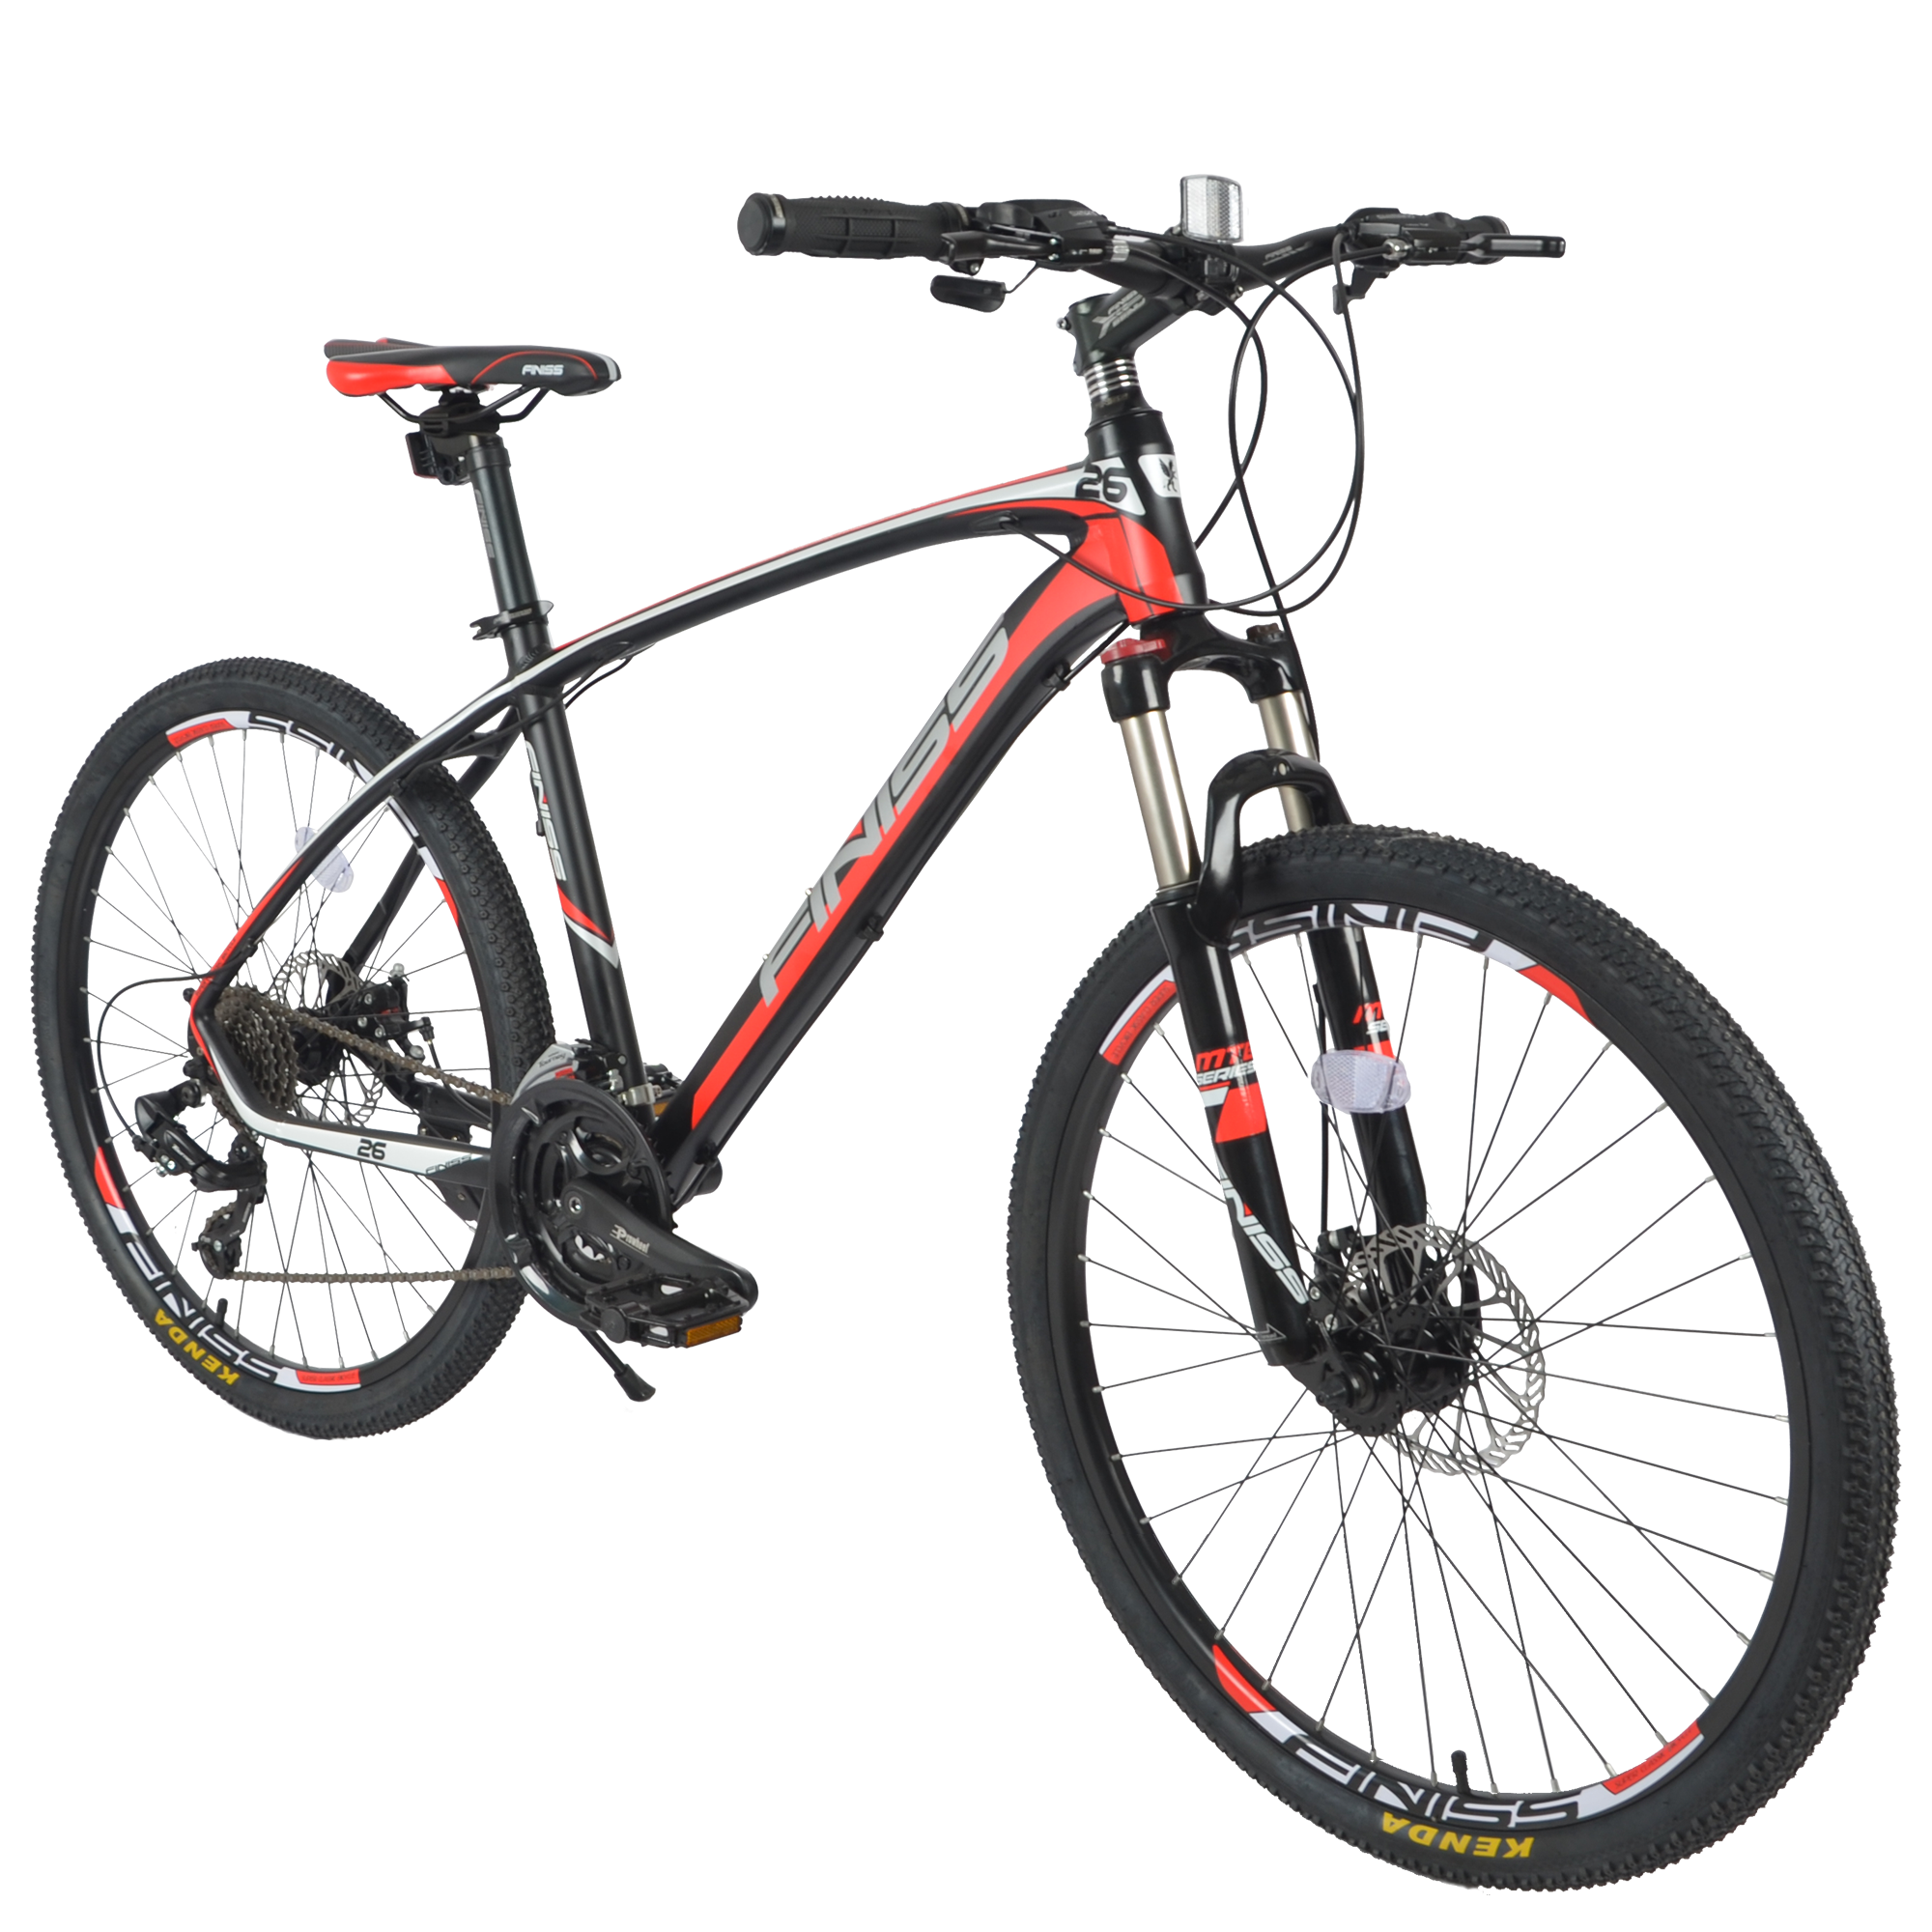 """Bicycle 24 Speed Mountain Bike 26"""" inch Tire Shock Absorbers Bicycle Road Bike Double Disc Brakes Red Snow Racing Bicycle"""